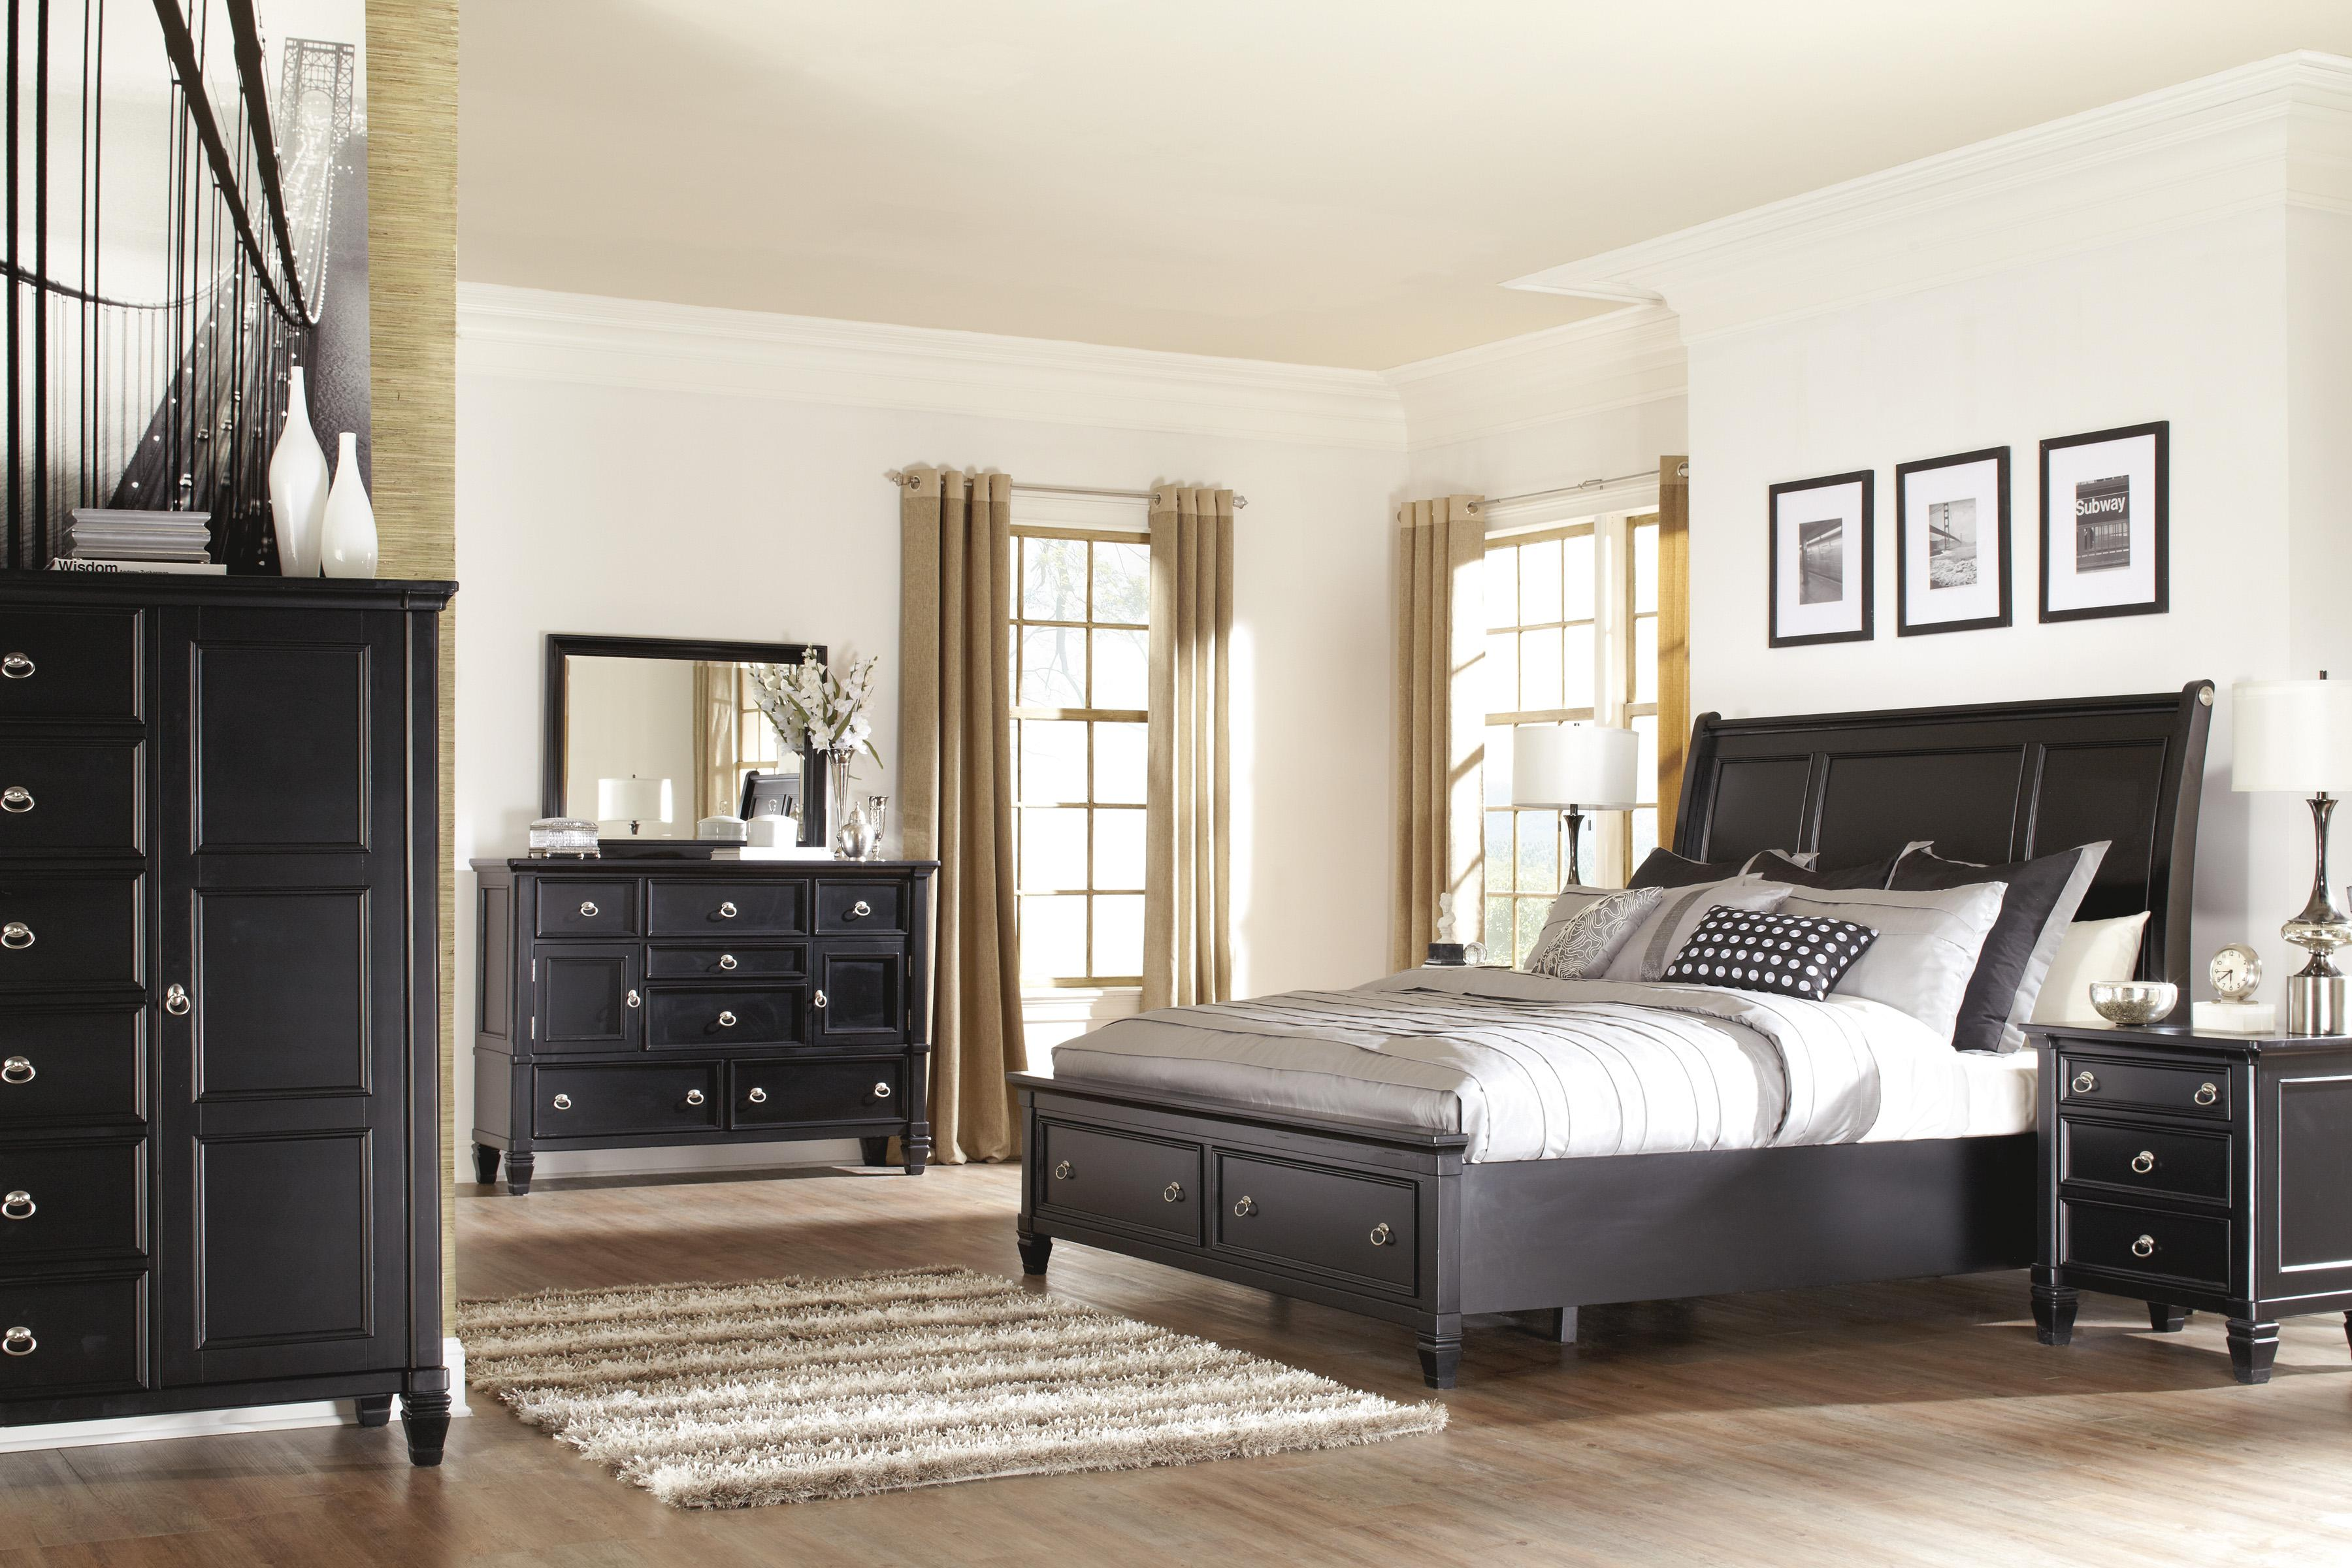 Millennium Bedroom Furniture Greensburg B671 By Millennium Del Sol Furniture Millennium